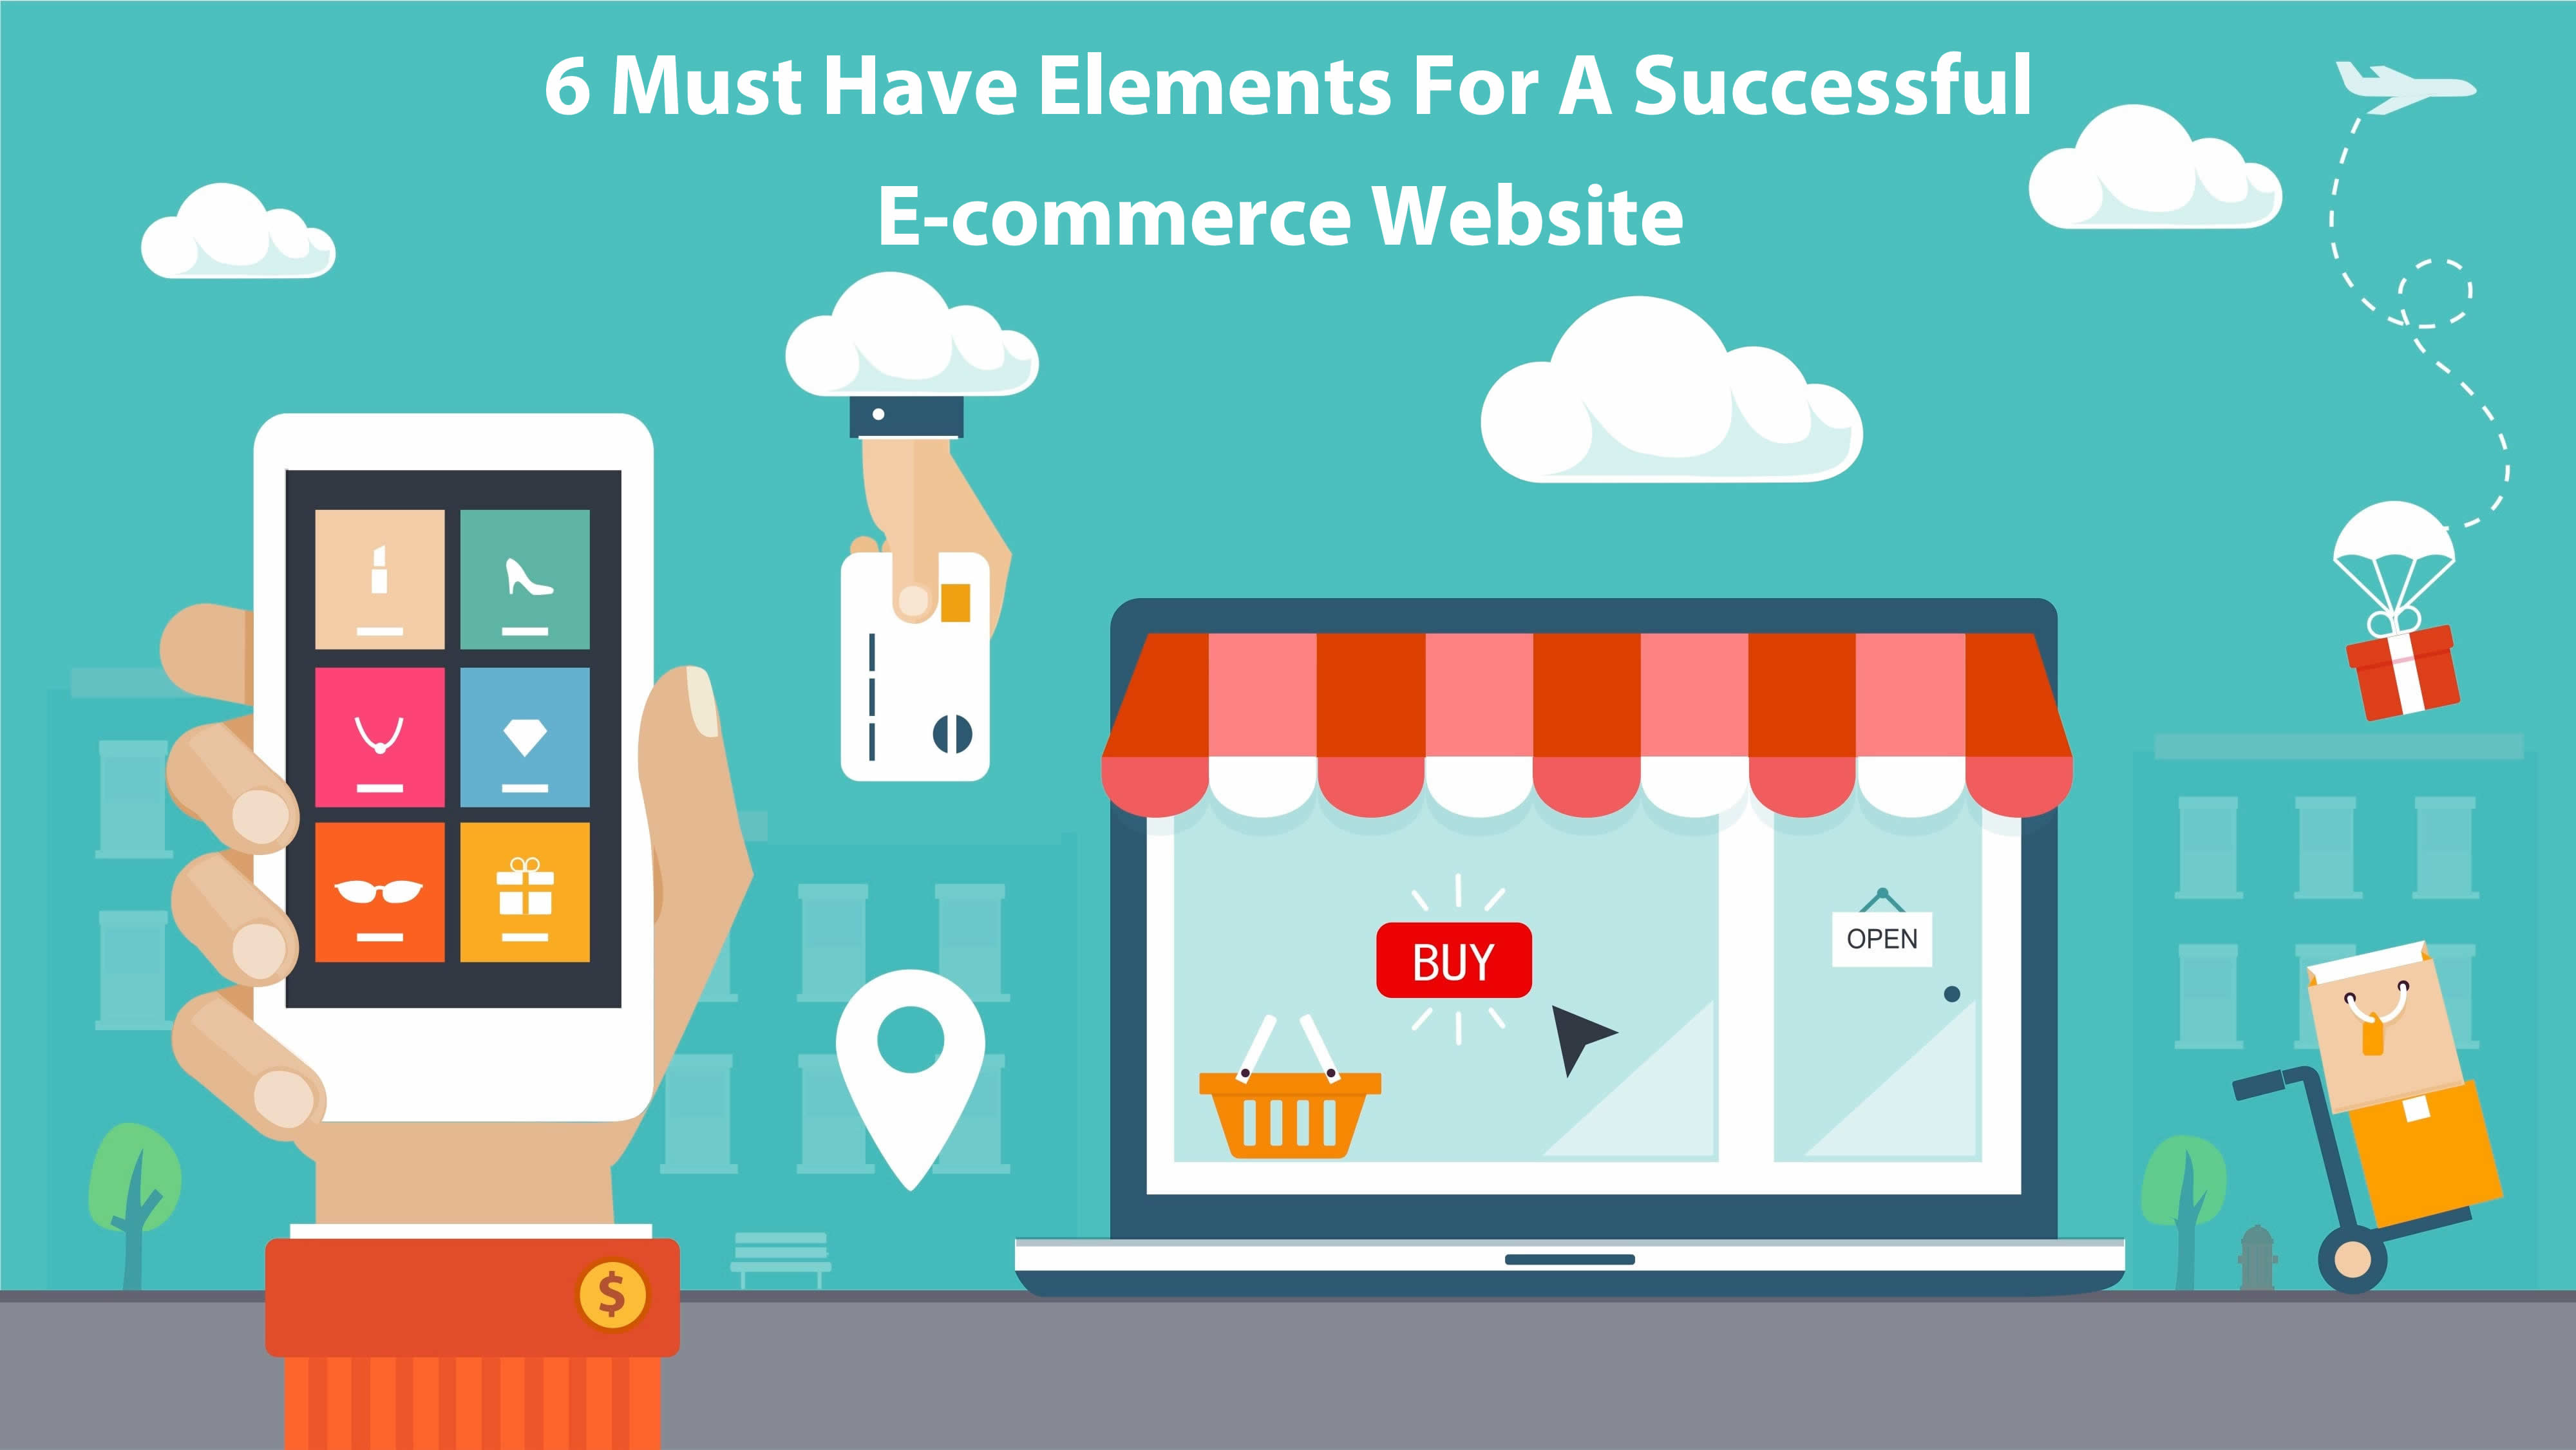 6 Must Have Elements For A Successful E-commerce Website